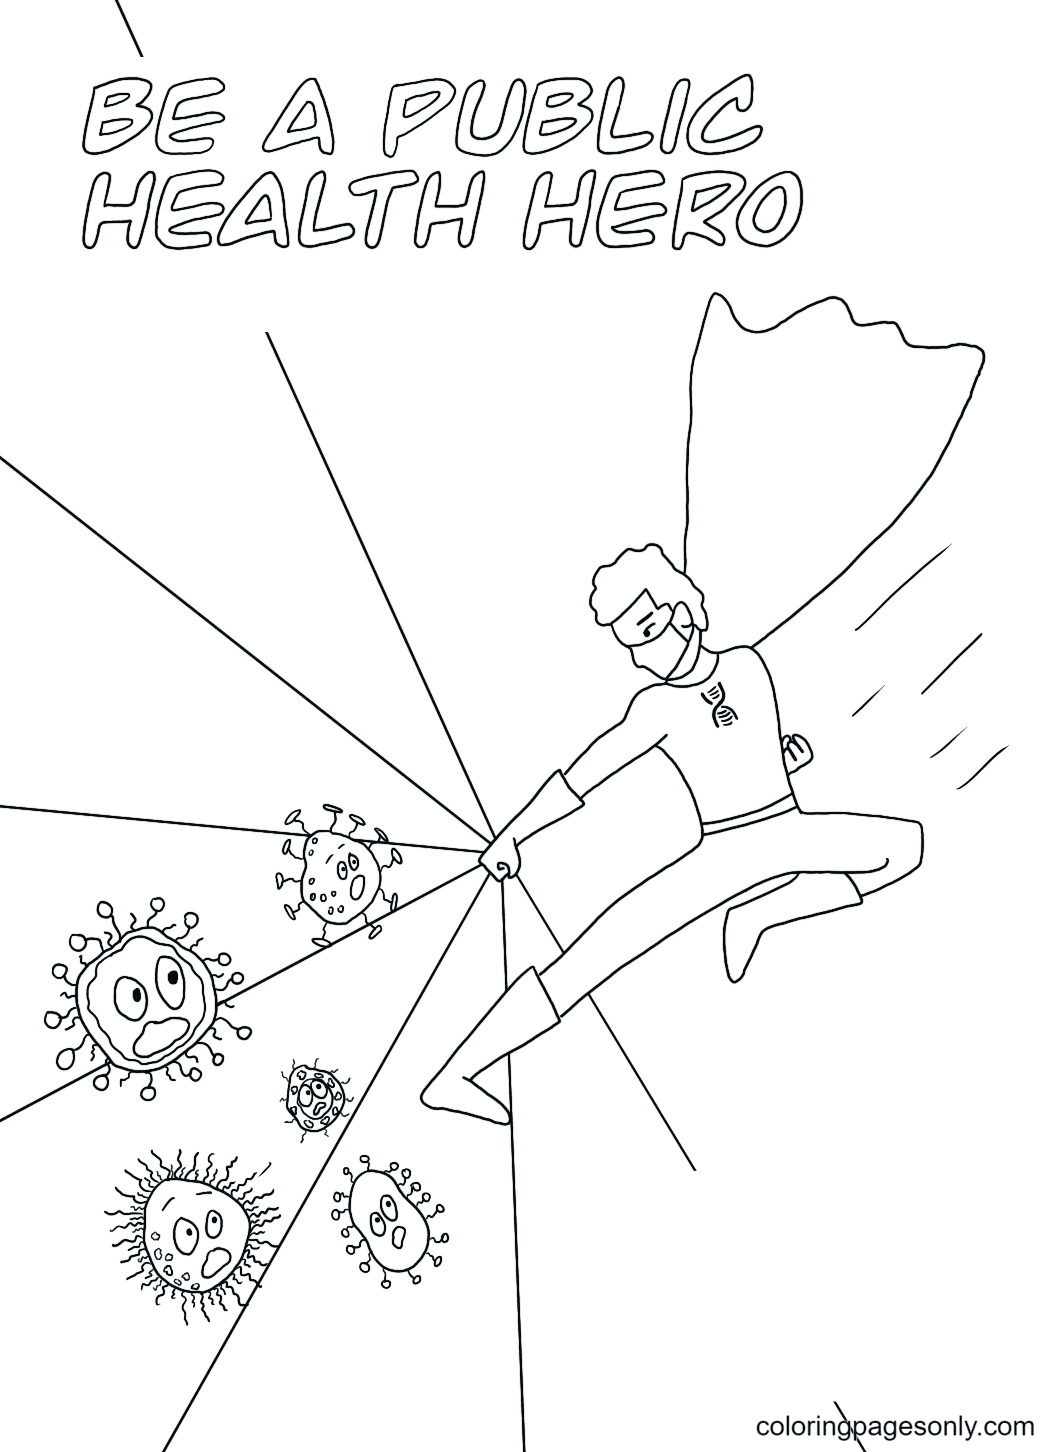 Be A Puplic Health Hero Coloring Page